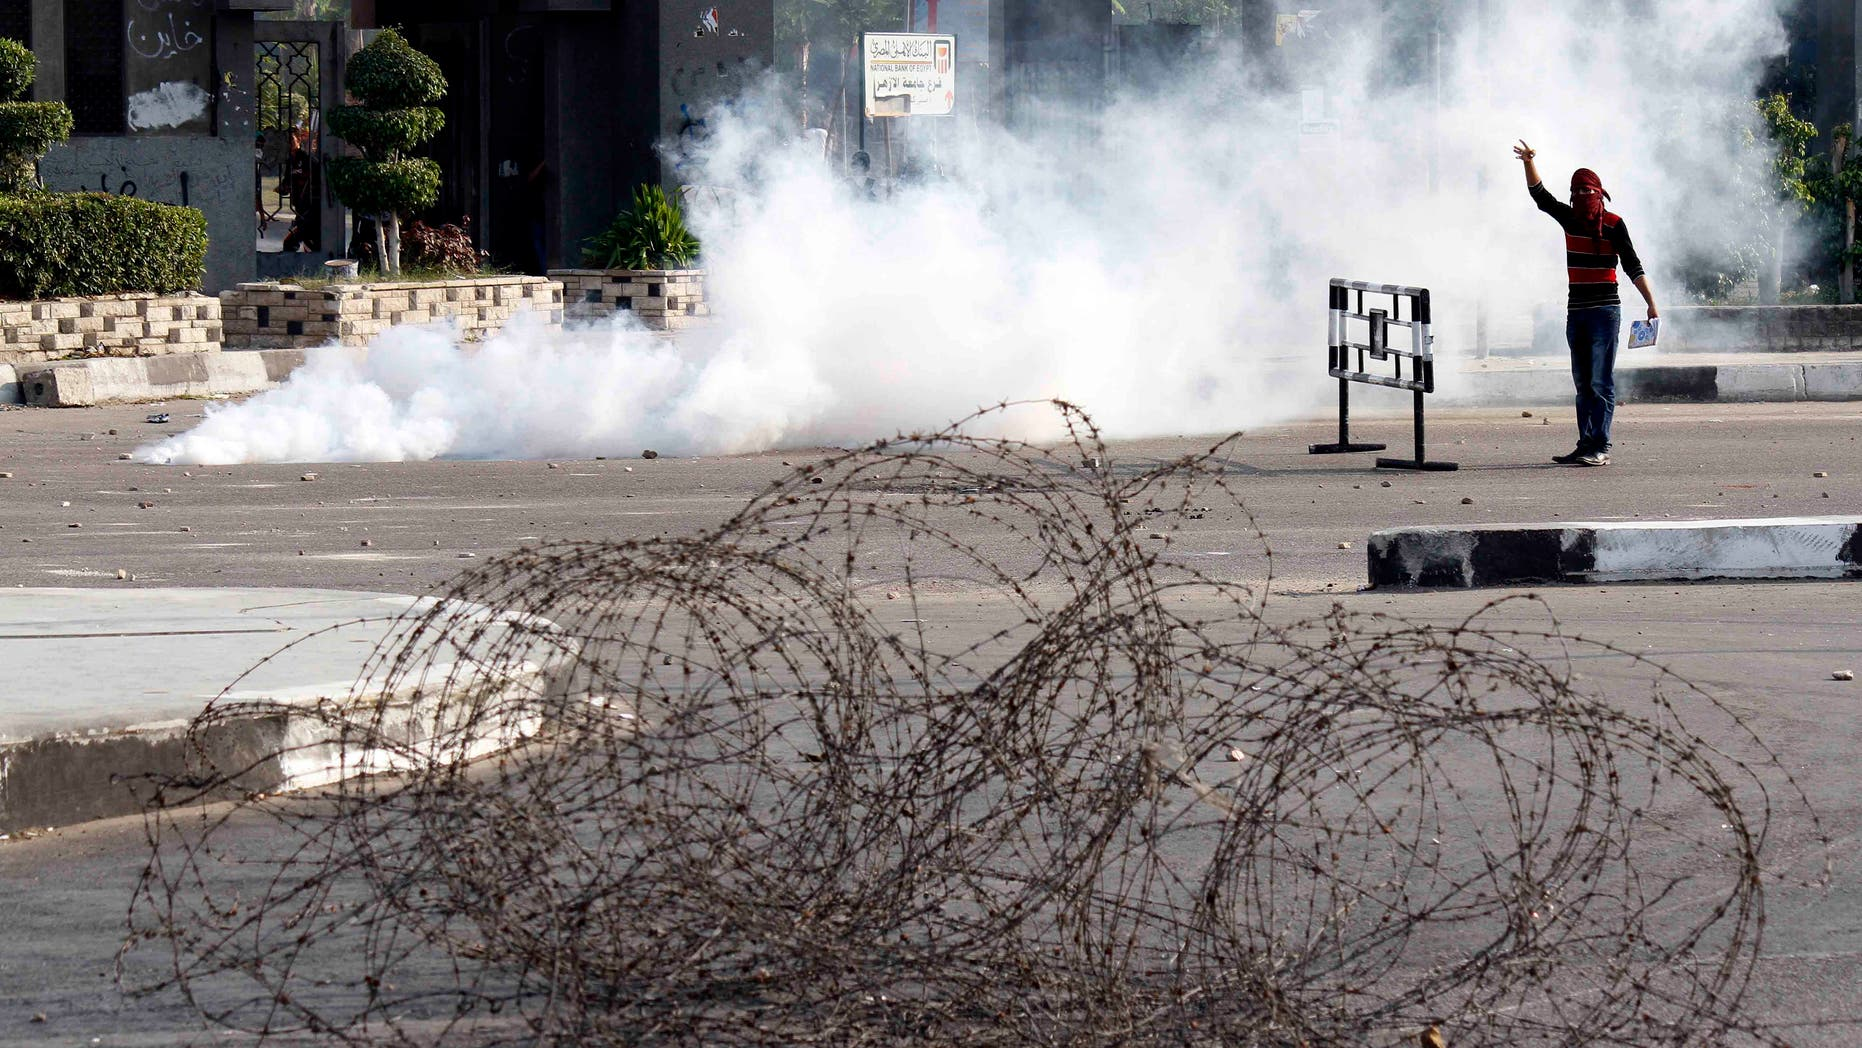 A masked protester stands in a cloud of tear gas during clashes with security forces dispersing several hundred pro- ousted President Mohammed Morsi university students who were rallying near Rabaah el-Adawiya, in eastern Cairo, Egypt, Monday, Oct. 28, 2013. As the protest got underway, army troops and police backed by armored vehicles blocked off the road leading to the site, creating a tense stand-off that lasted hours. By late afternoon, the students retreated to their campus, while pelting security forces with rocks.(AP Photo/Said Hamdy)